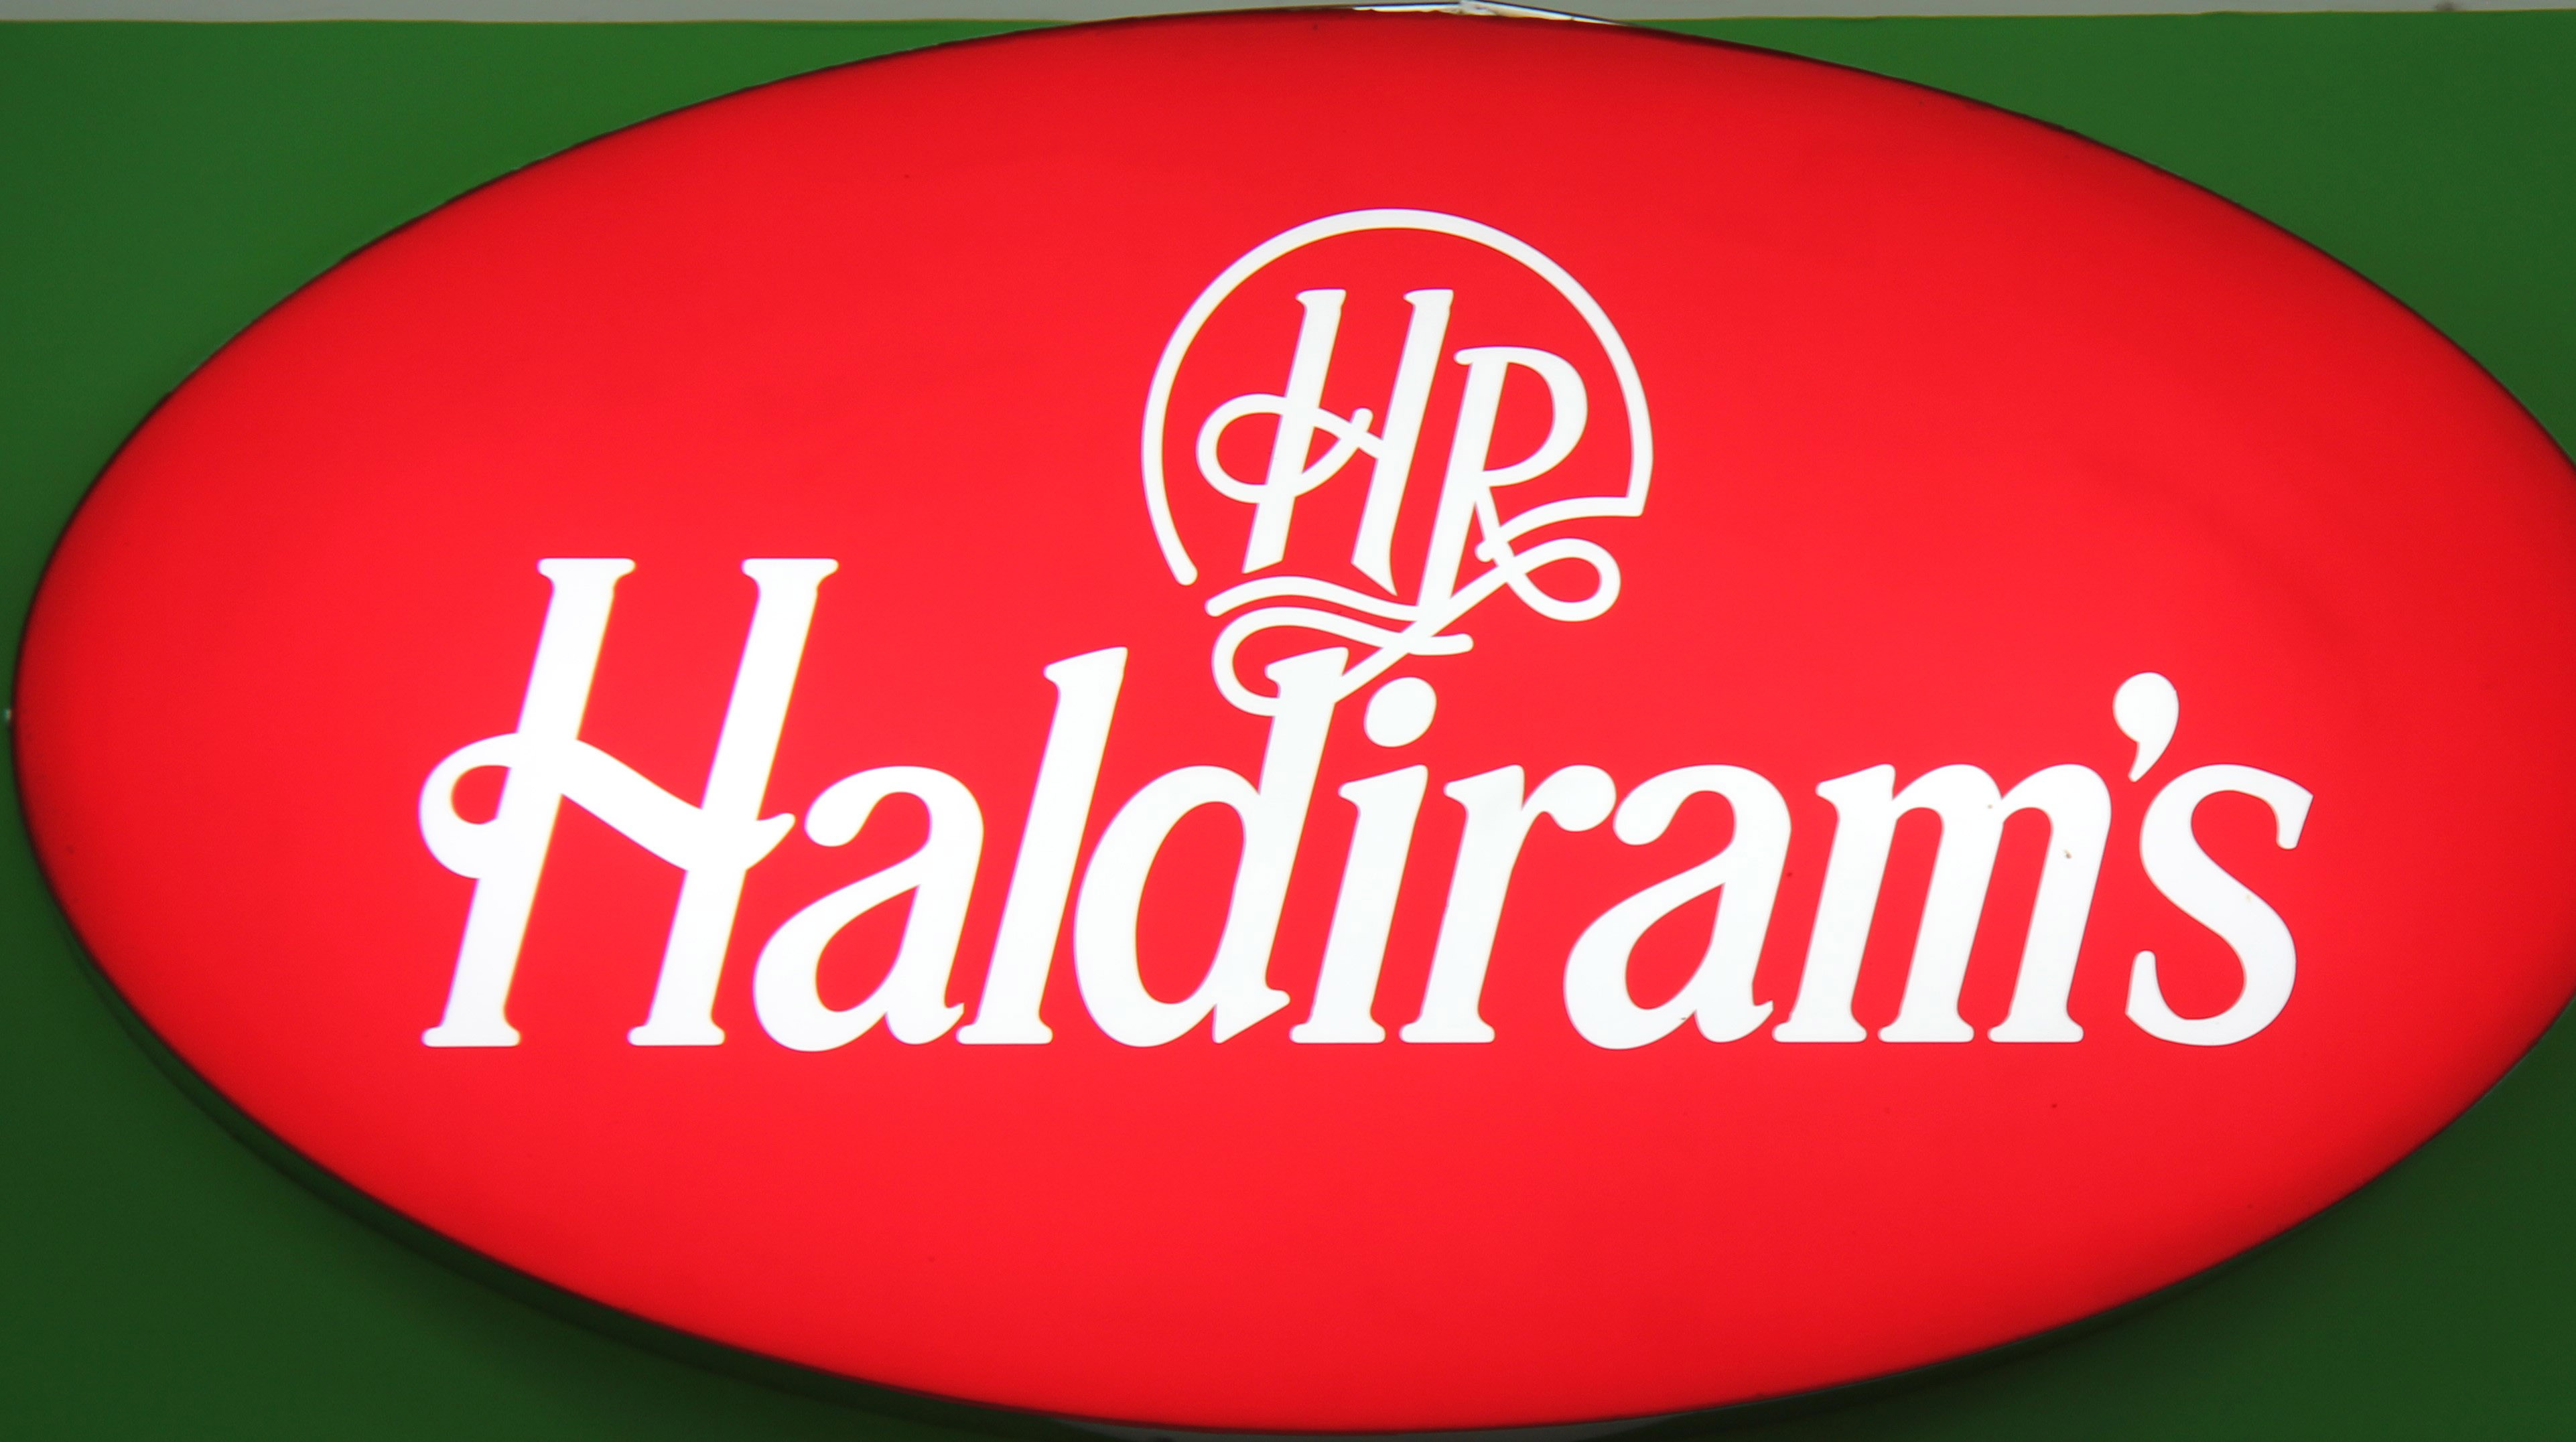 ​Haldiram grown twice the size of Hindustan Unilever's packaged food division